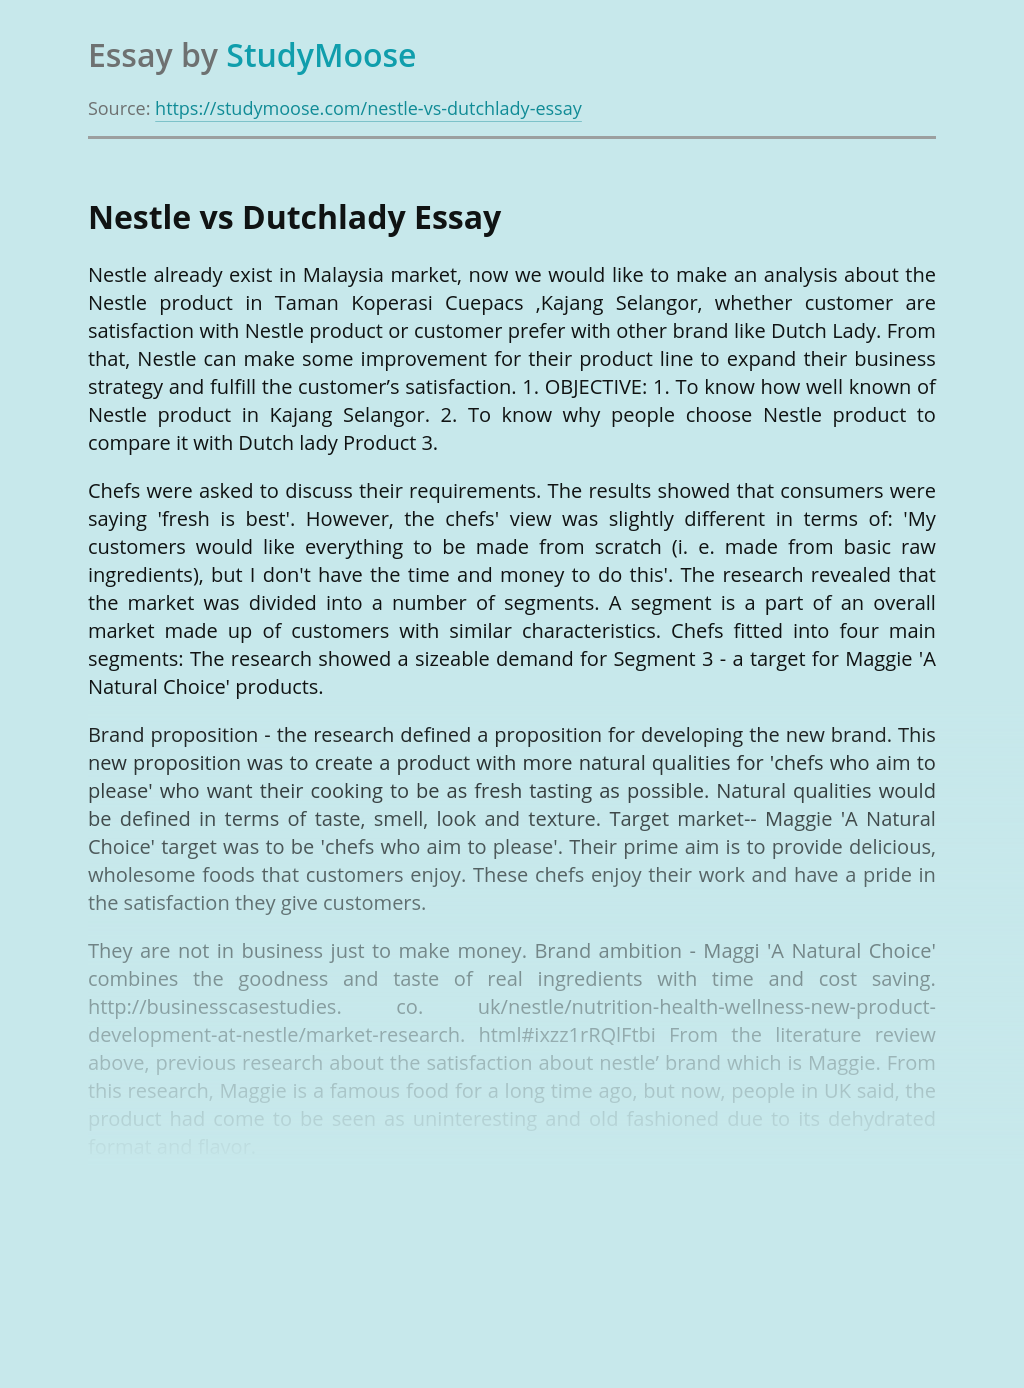 Research on Nestle vs Dutchlady